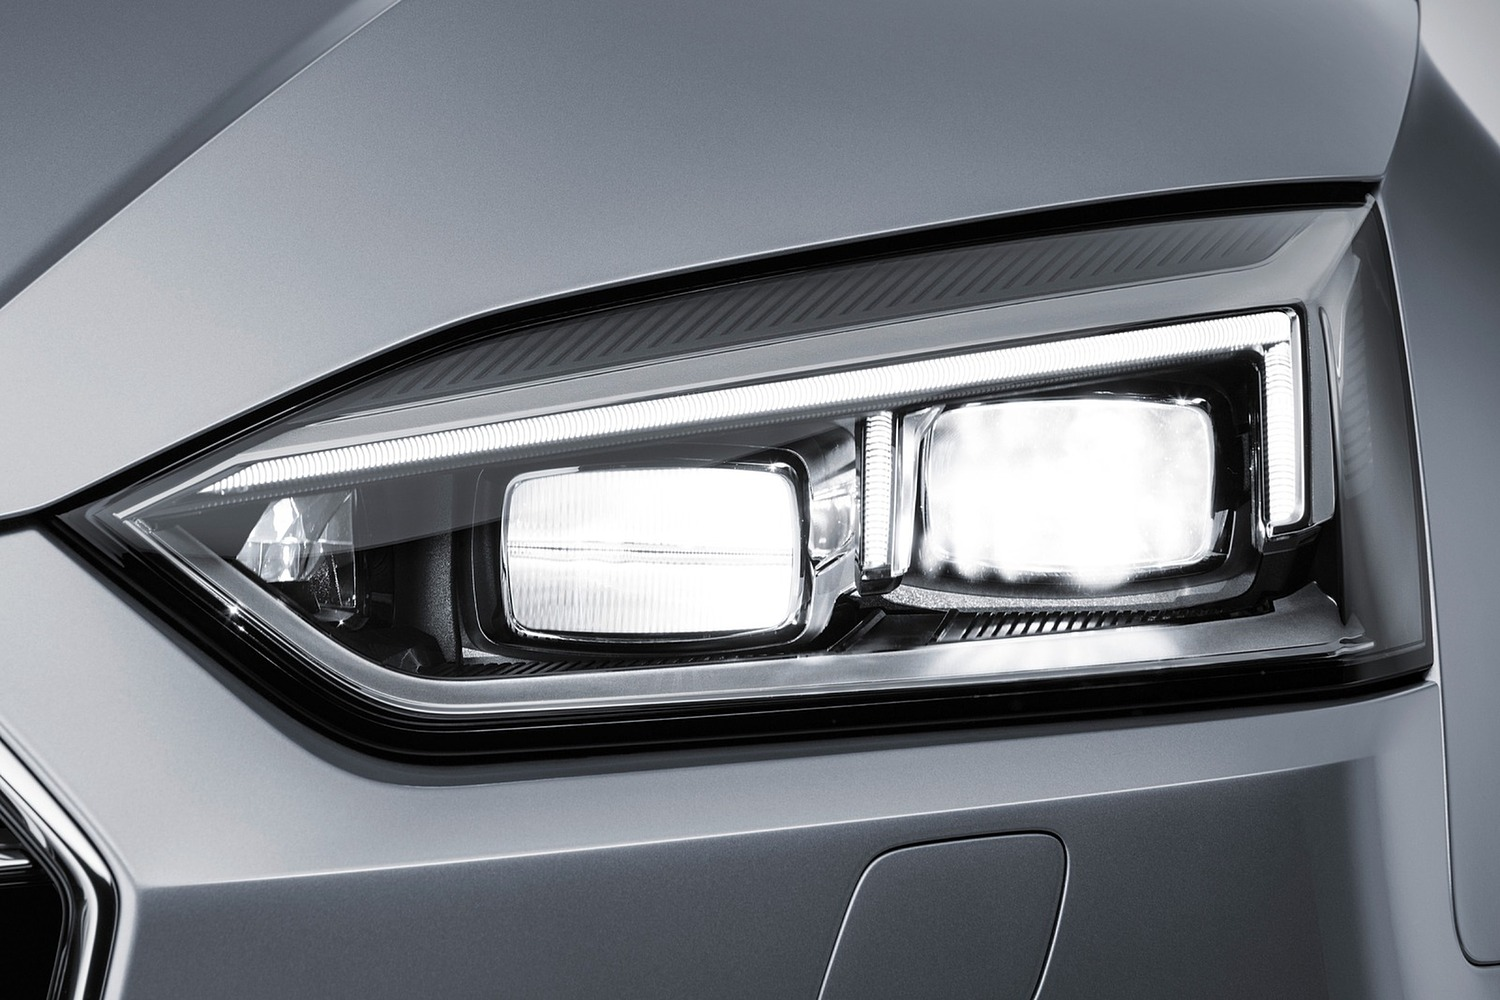 2018 Audi A5 Prestige quattro Coupe Headlamp Detail